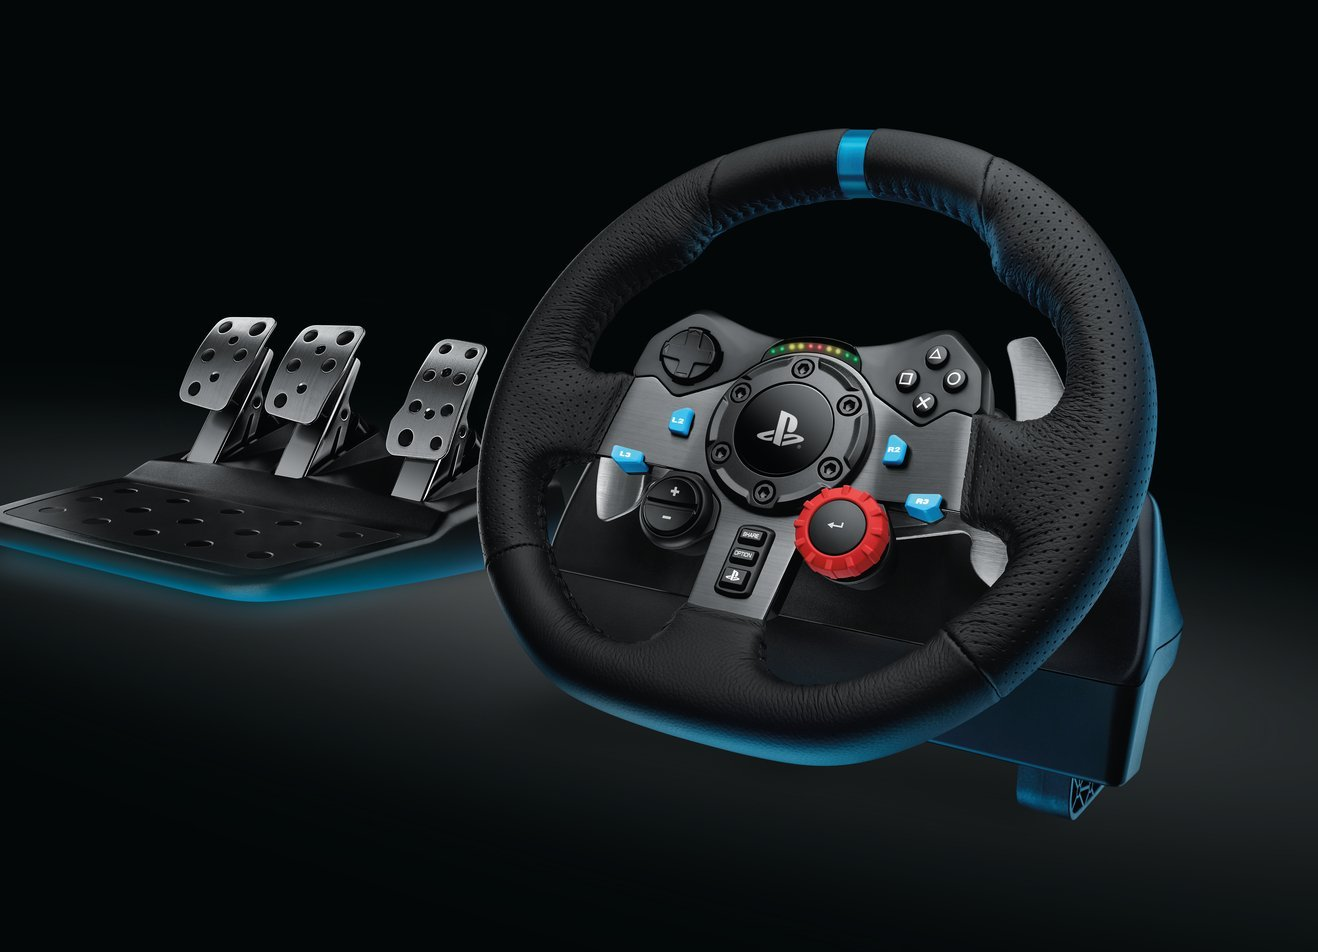 logitech g29 test prix et fiche technique volant les num riques. Black Bedroom Furniture Sets. Home Design Ideas